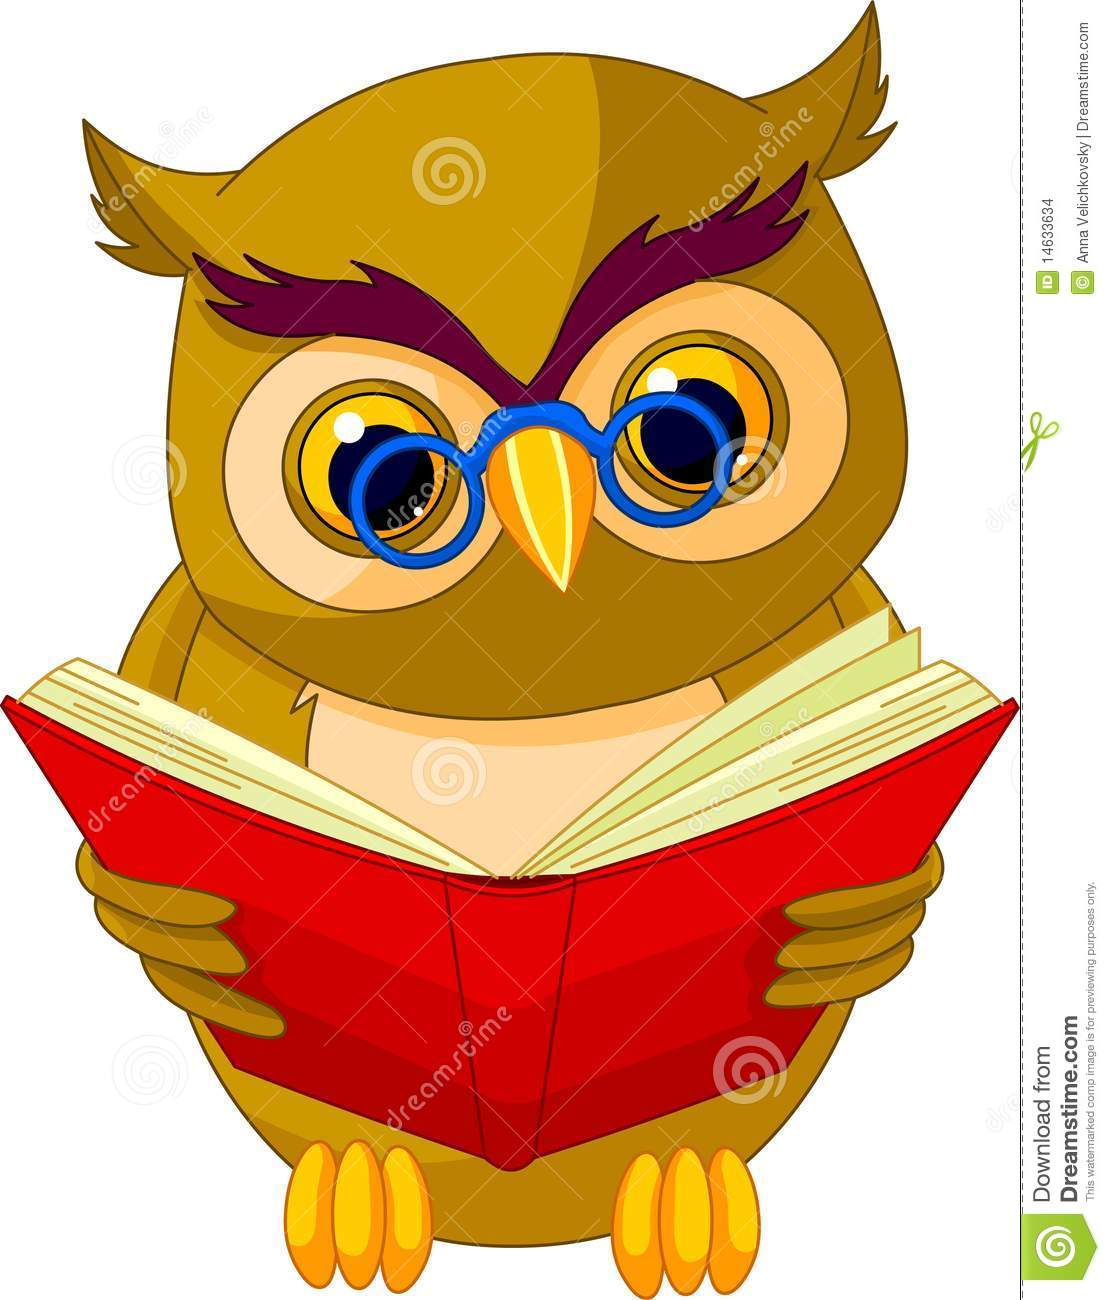 Fully editable illustration of a cartoon wise owl.